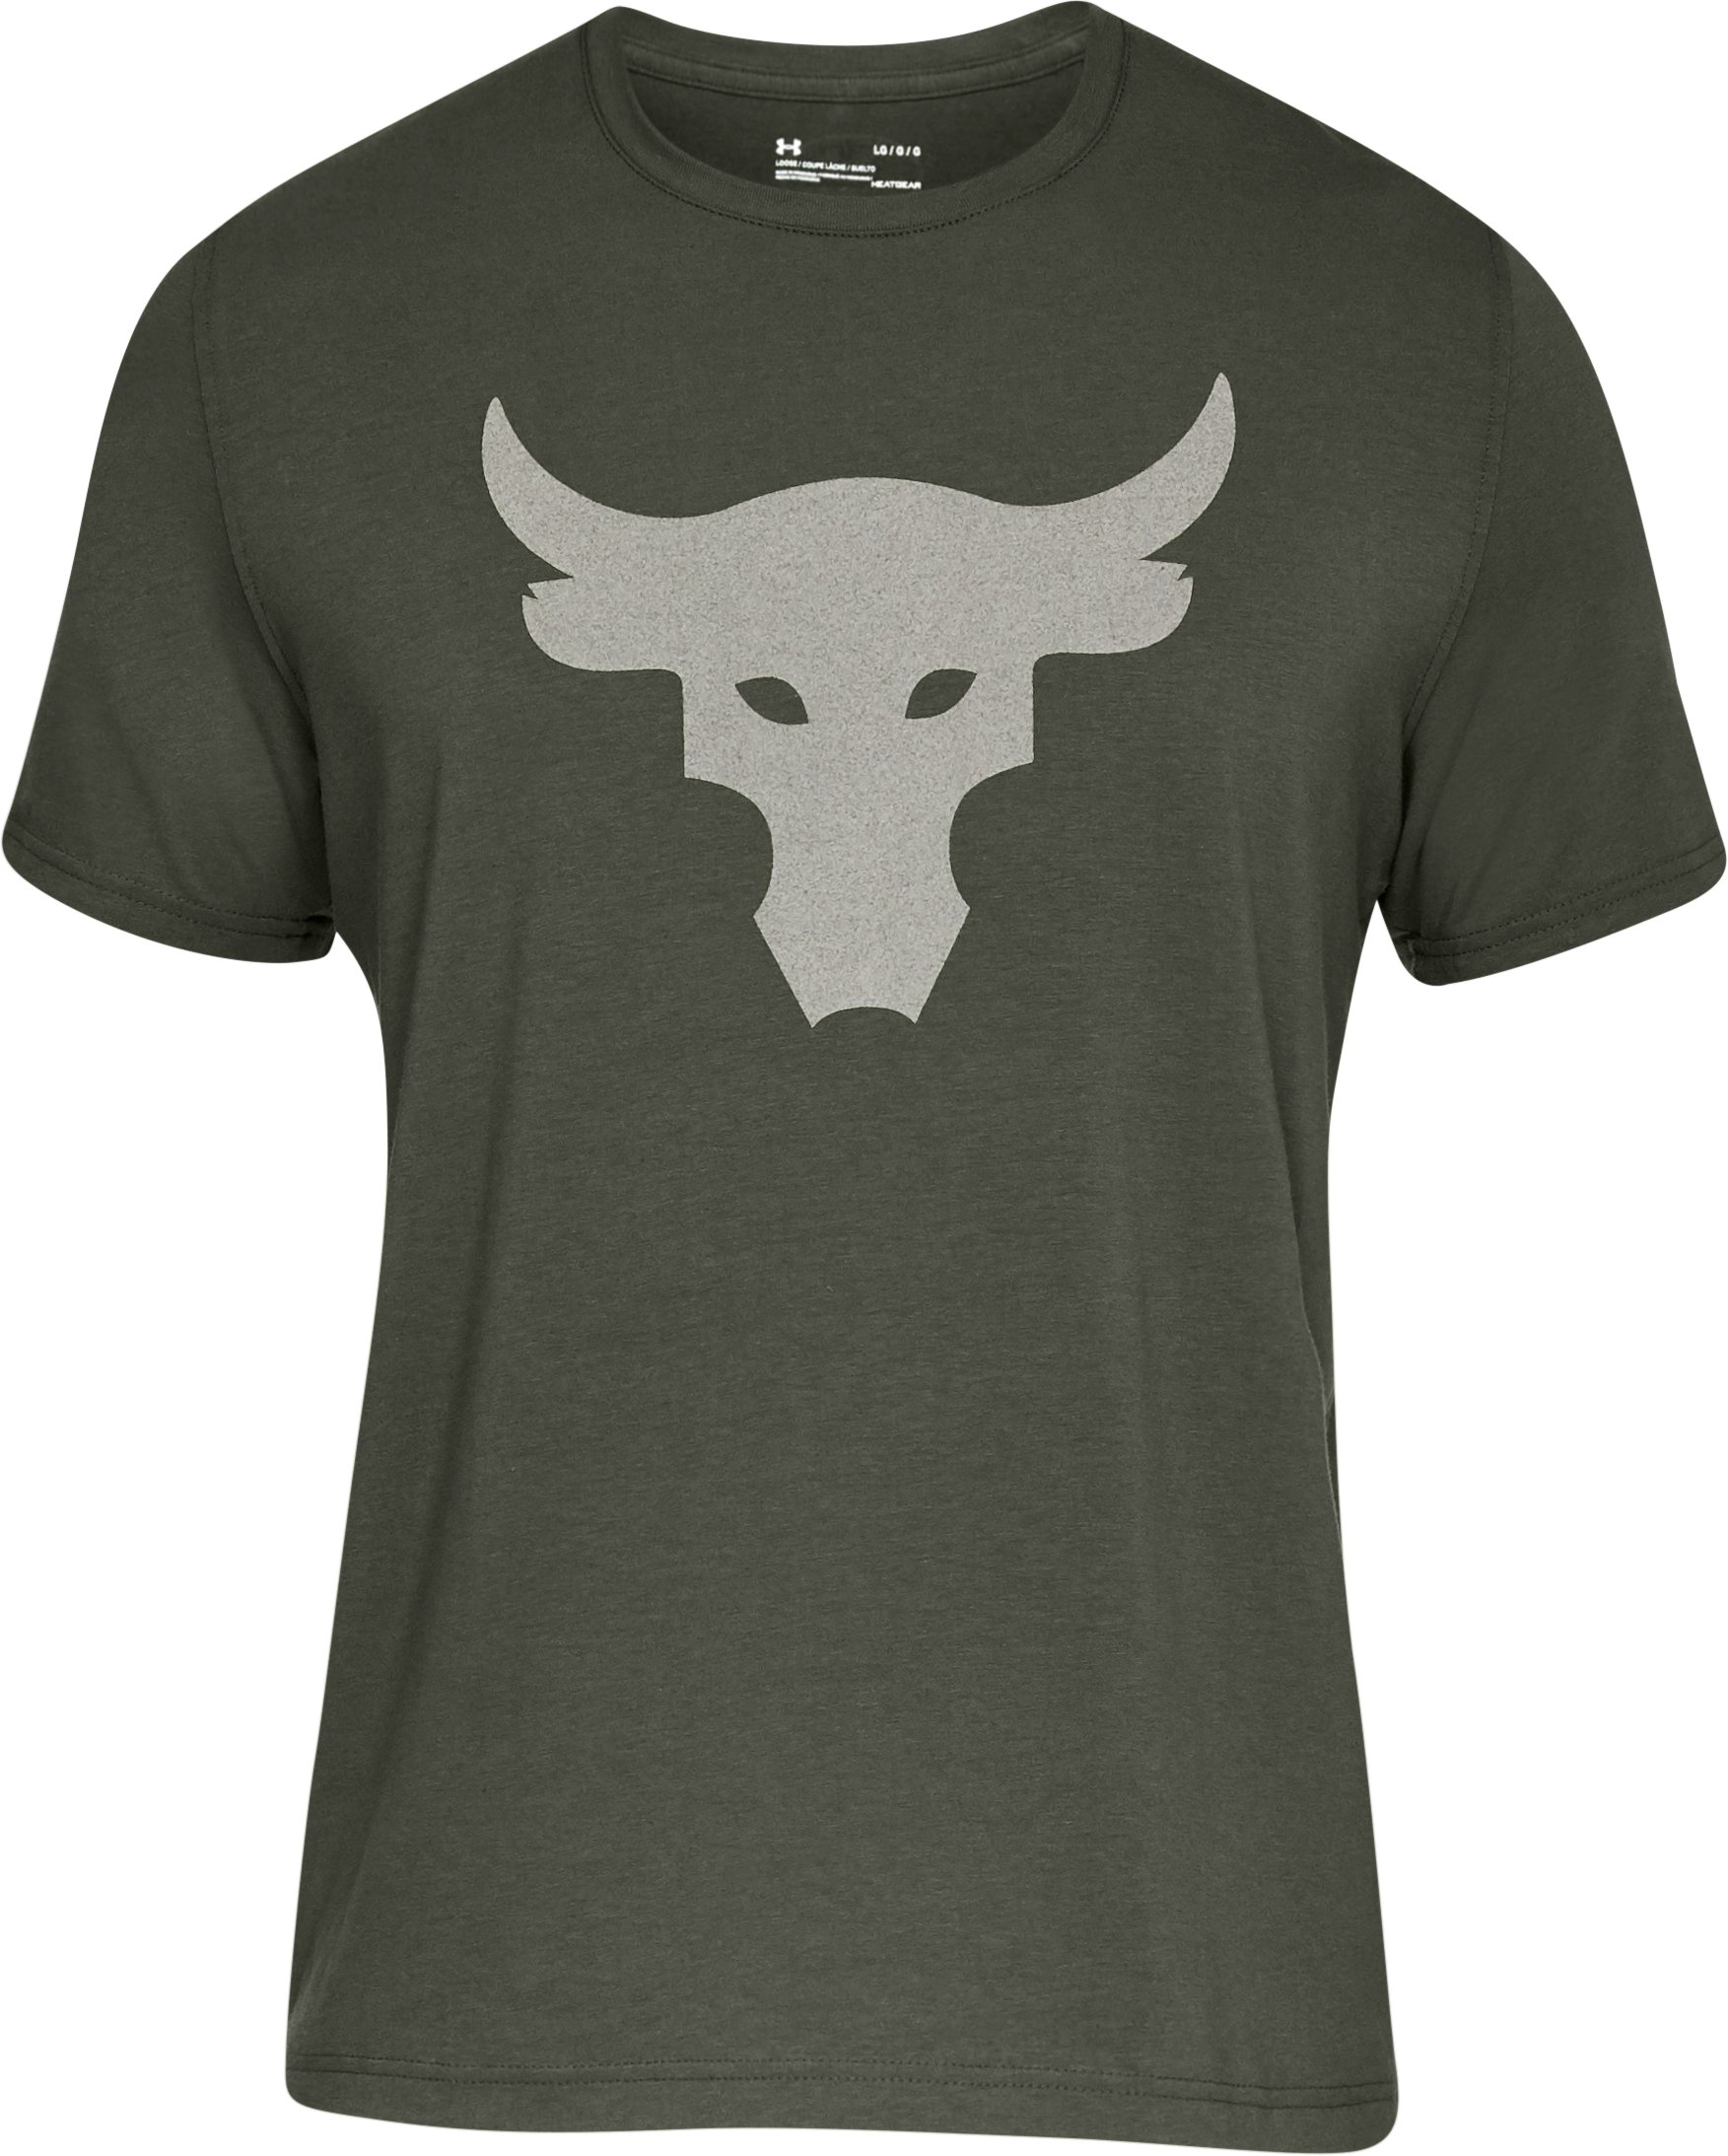 Men's UA x Project Rock Stealth Bull T-Shirt, DOWNTOWN GREEN, undefined